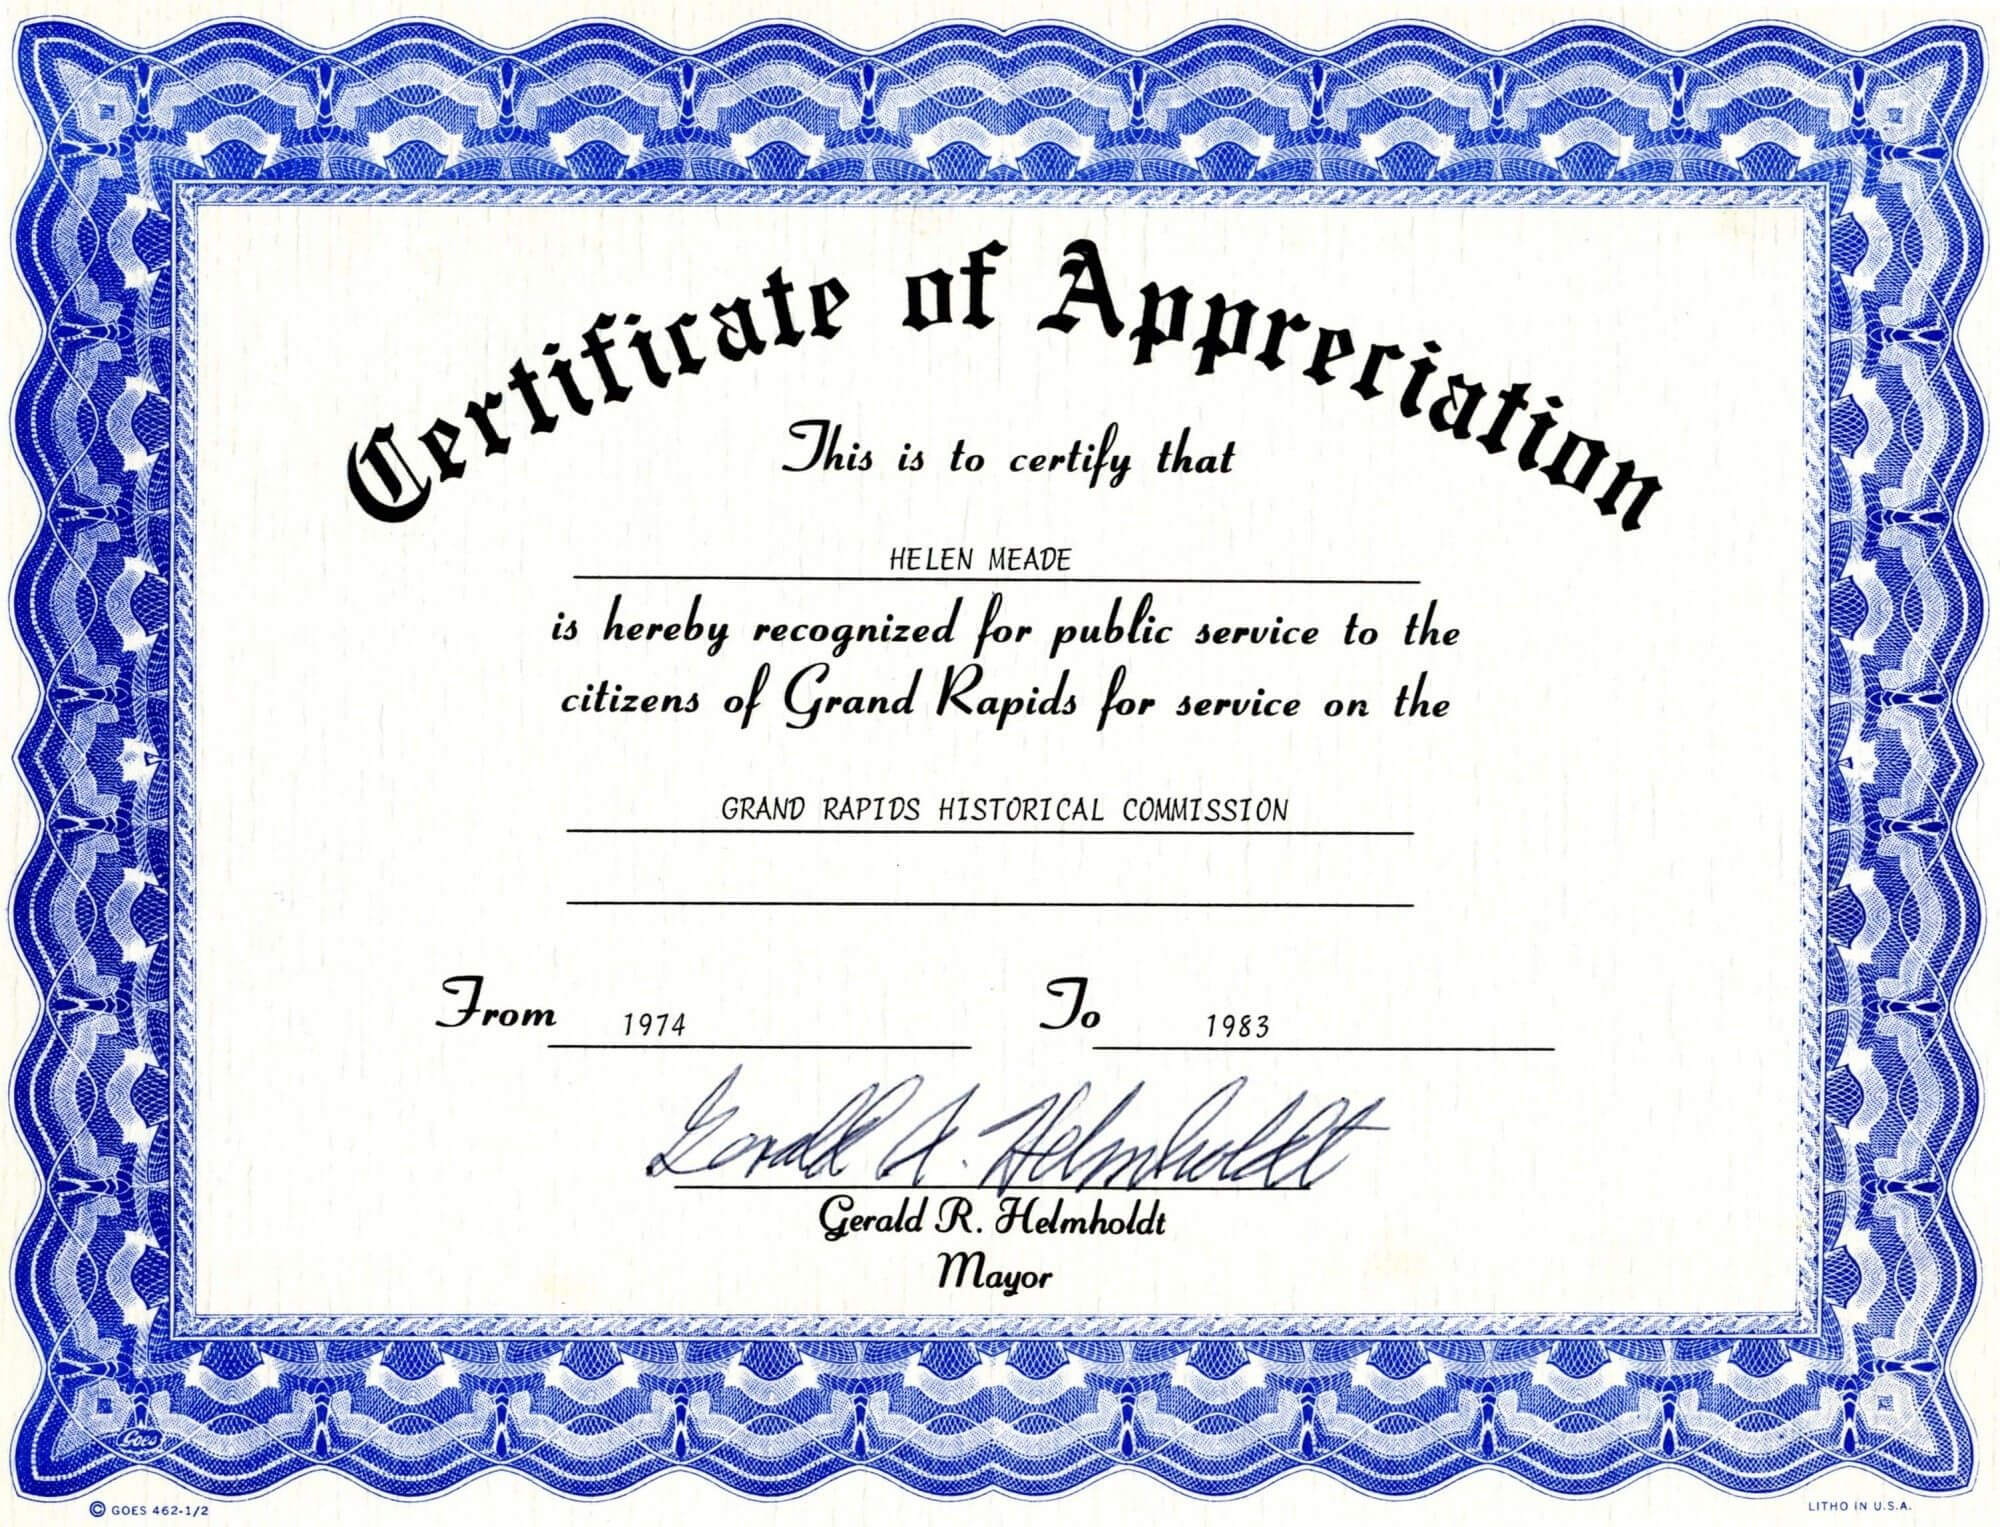 012 Certificate Of Appreciation Template Word Doc Ideas Pertaining To Certificate Of Appreciation Template Doc